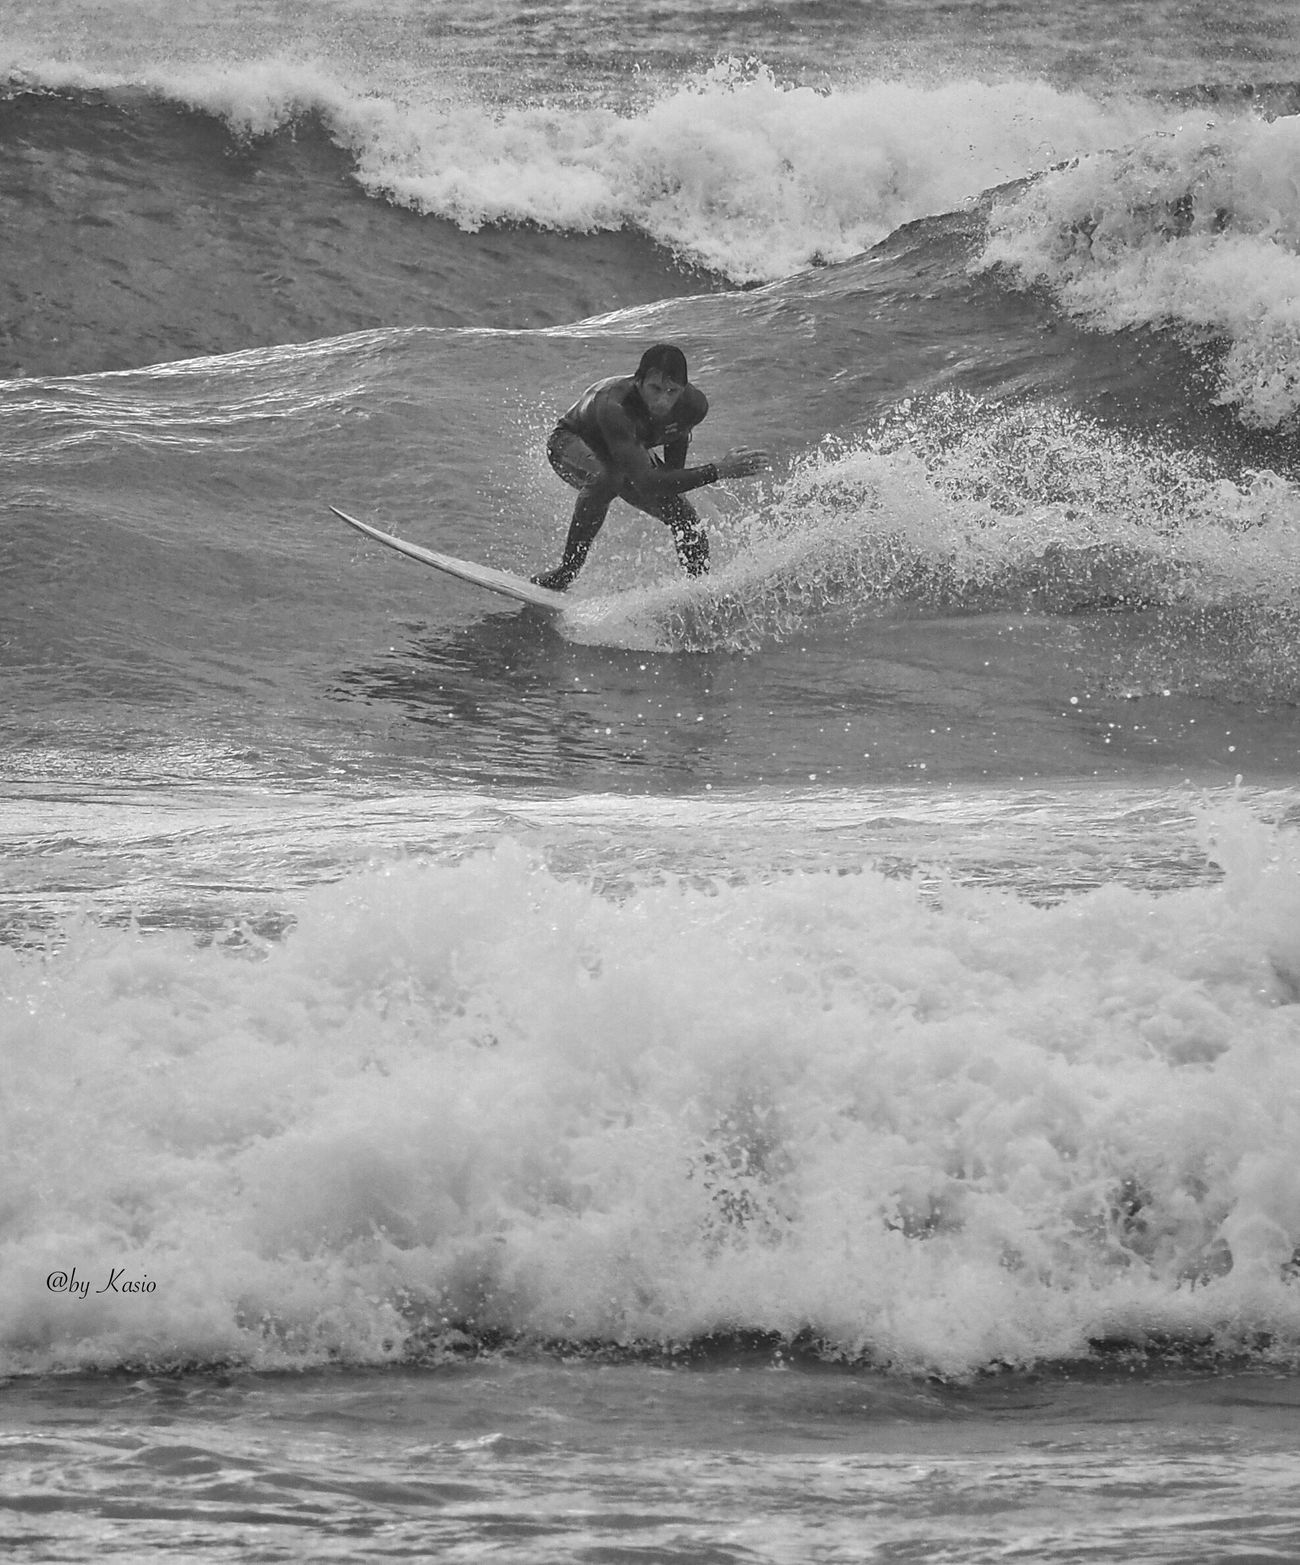 Sobre el mar... Sea Wave Surfing Power In Nature Nature Splashing Real People Extreme Sports One Person Aquatic Sport Water Sport Surfboard Surf Olympus Om-d E-m10 Olympus Capture The Moment Eye4photography  Beach Life EyeEm Best Shots Beachphotography Bw Photography BW Collection